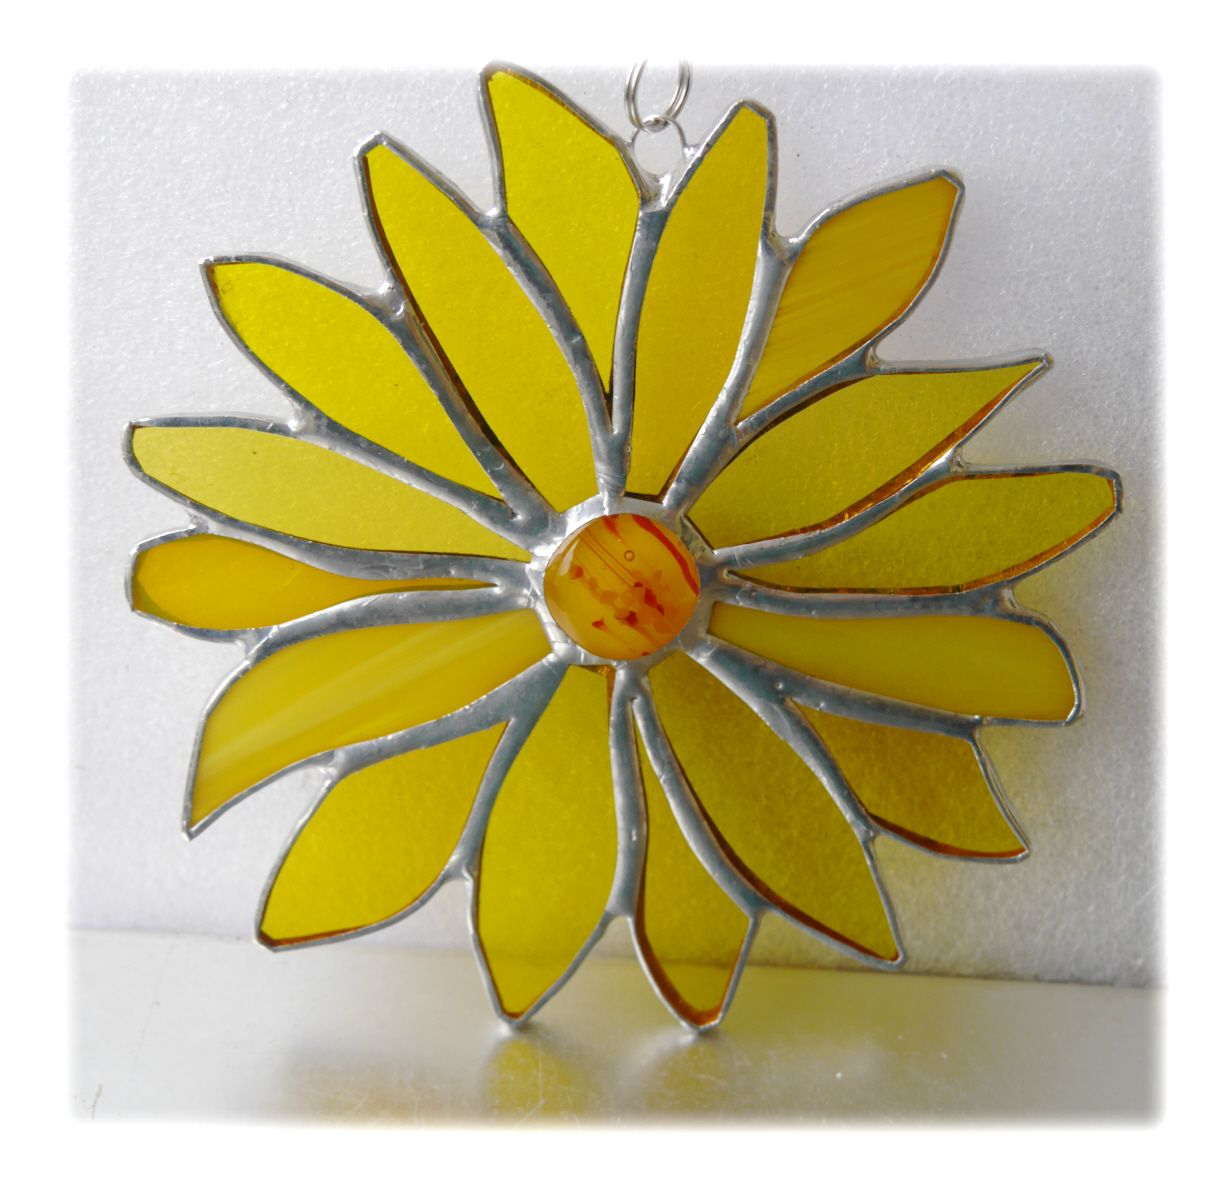 YELLOW Yellow 16 petal Flower 001 #1905 FREE 17.50